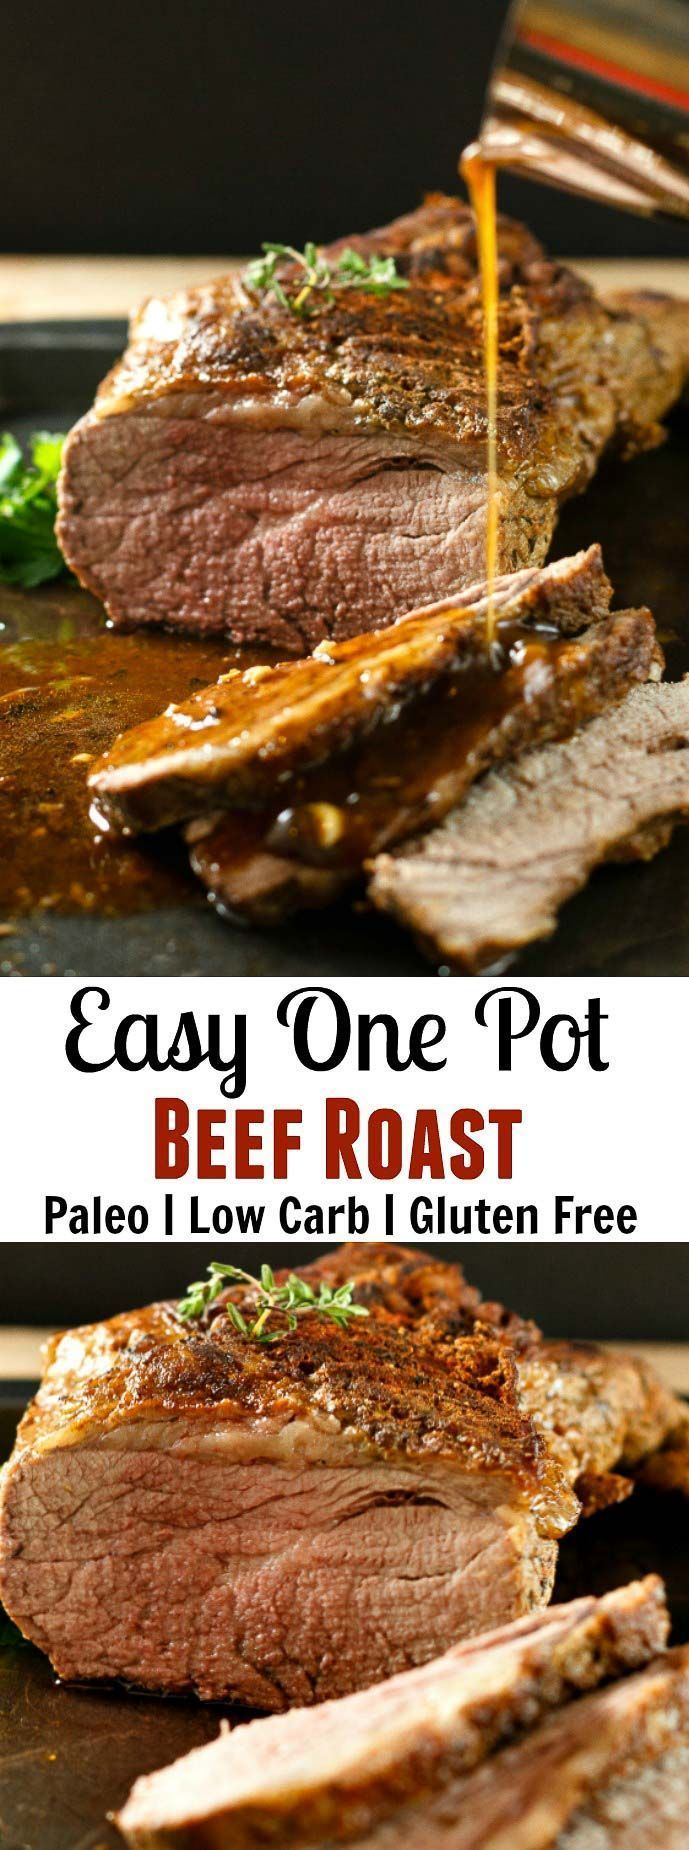 Easy One Pot Beef Roast with Wine Sauce- Low Carb Paleo-